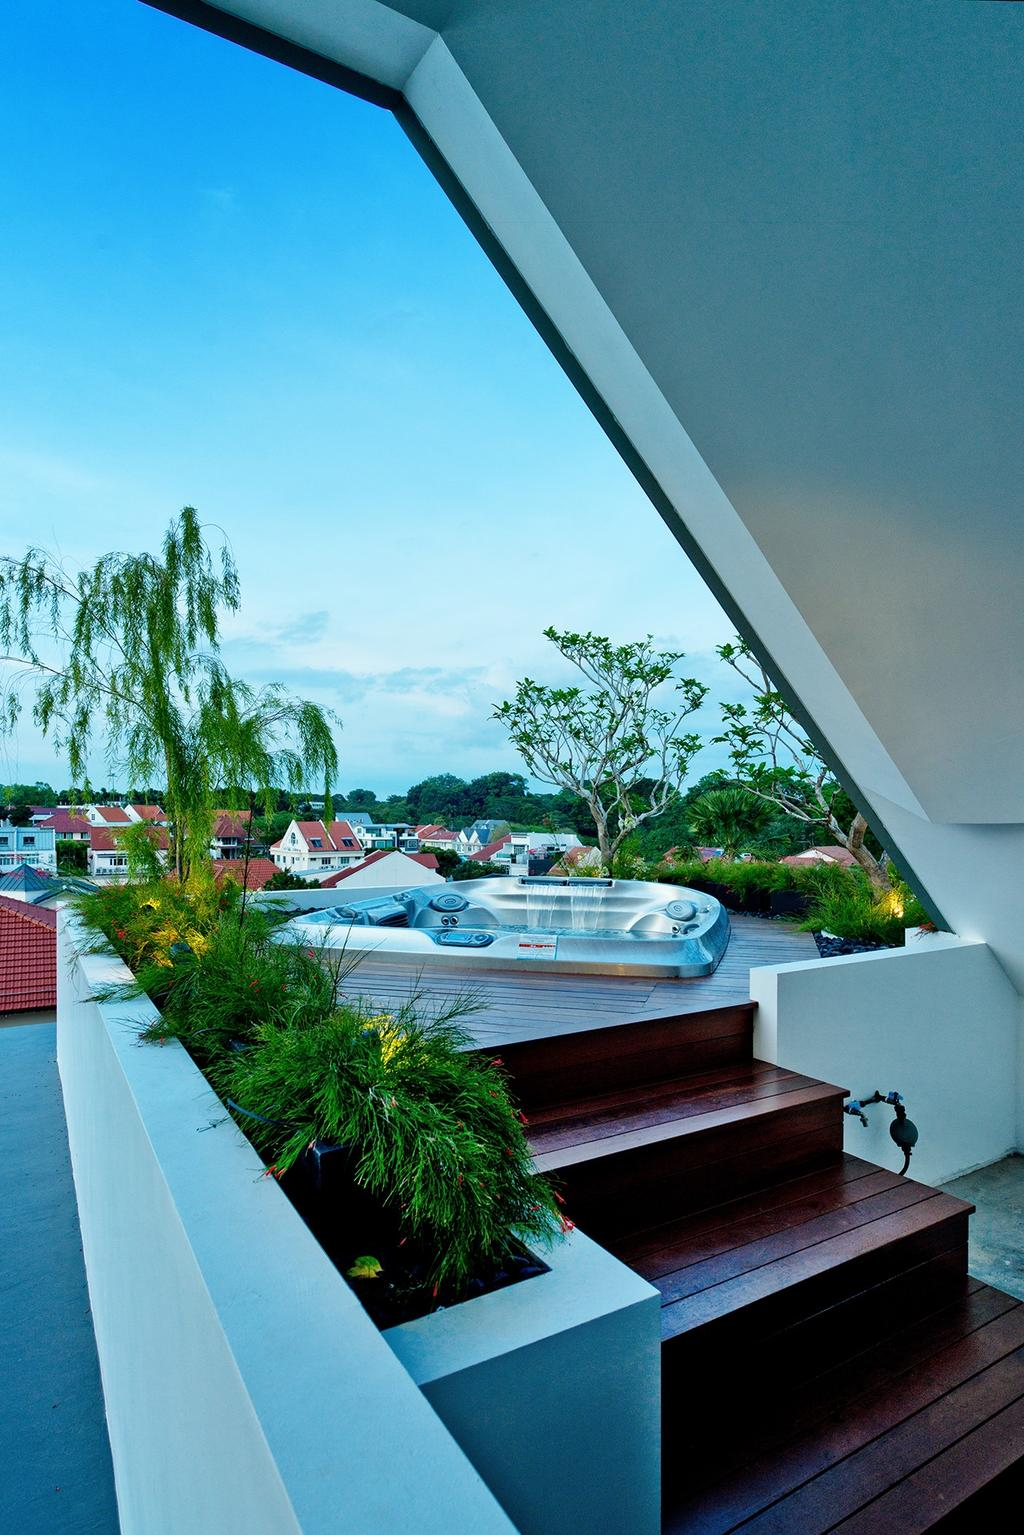 Contemporary, Landed, Toh Heights, Architect, Kite Studio Architecture, Jacuzzi, Entertainment, Deck, Wooden Deck, Outdoor Deck, Attic, Spa, Lounge, Flora, Jar, Plant, Potted Plant, Pottery, Vase, Boat, Transportation, Vessel, Watercraft